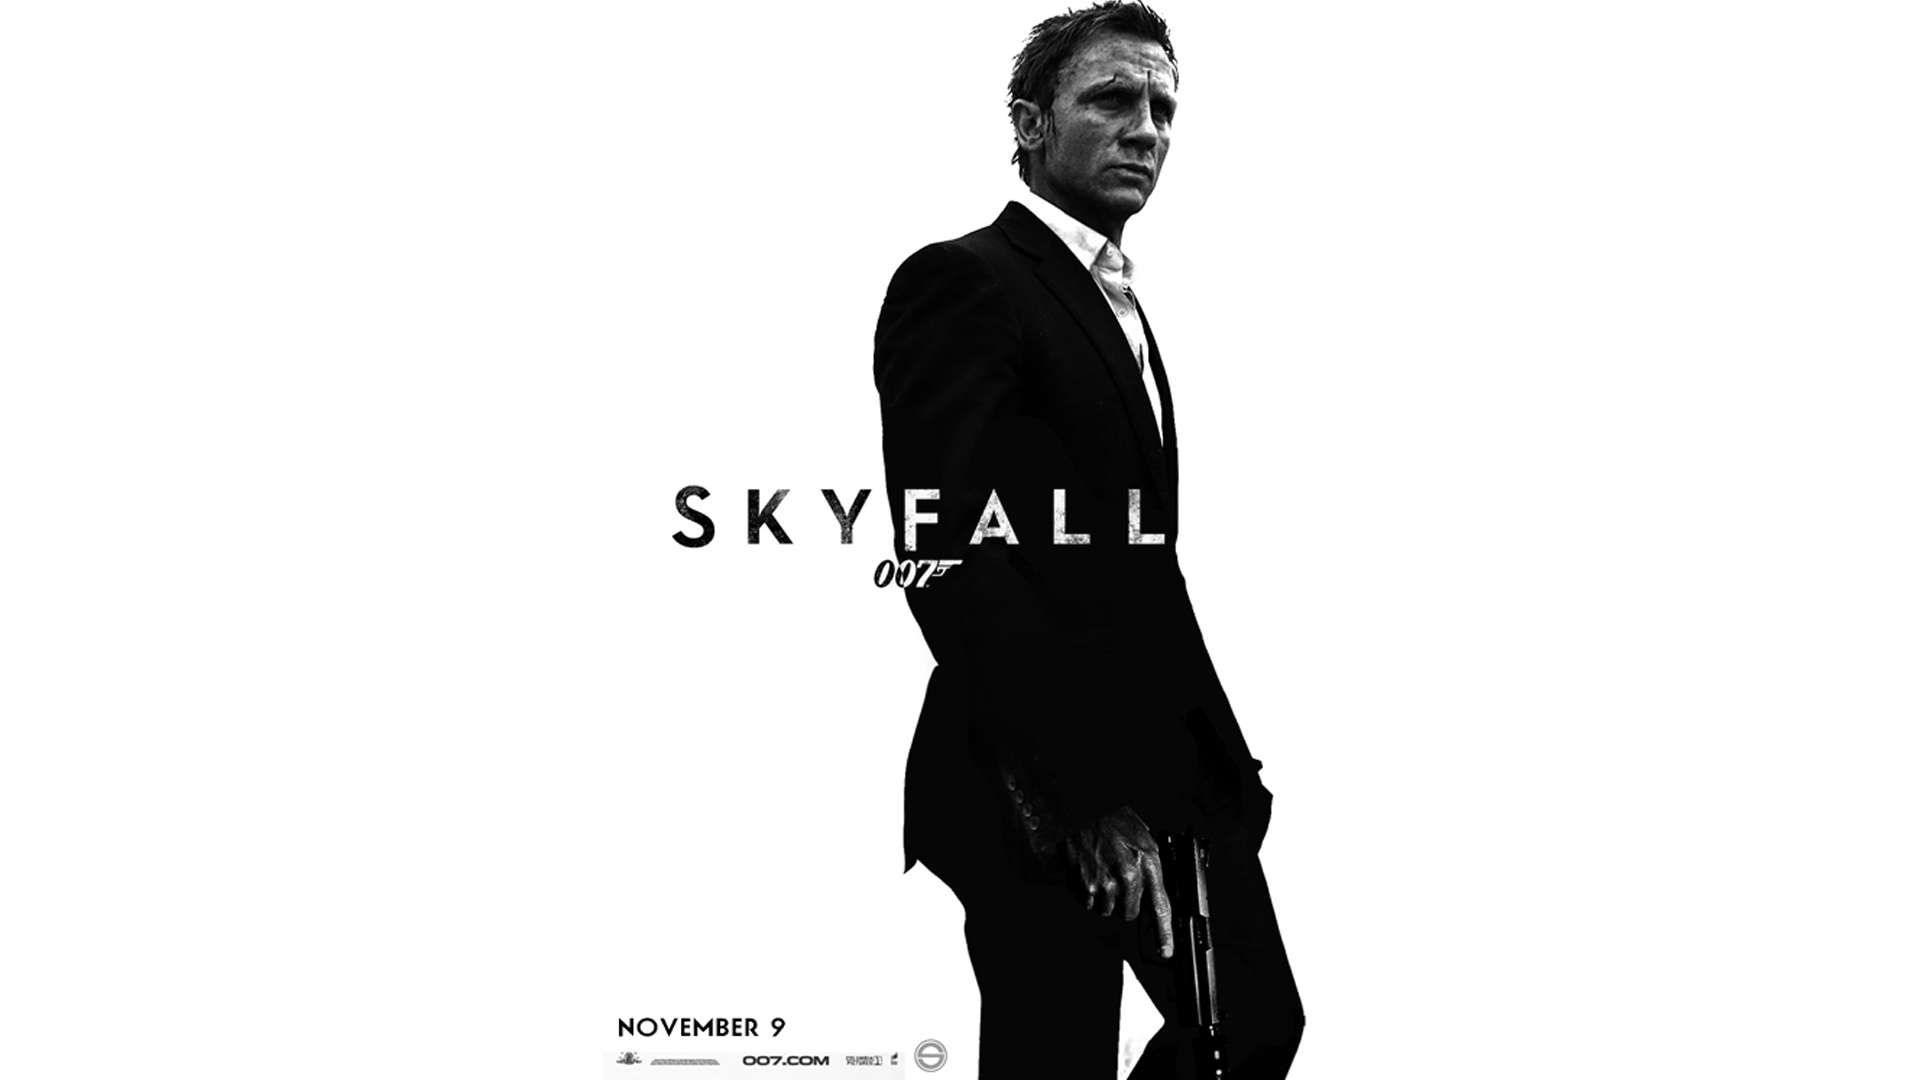 Skyfall James Bond wallpaper   Daniel Craig wallpaper 32623669 1920x1080